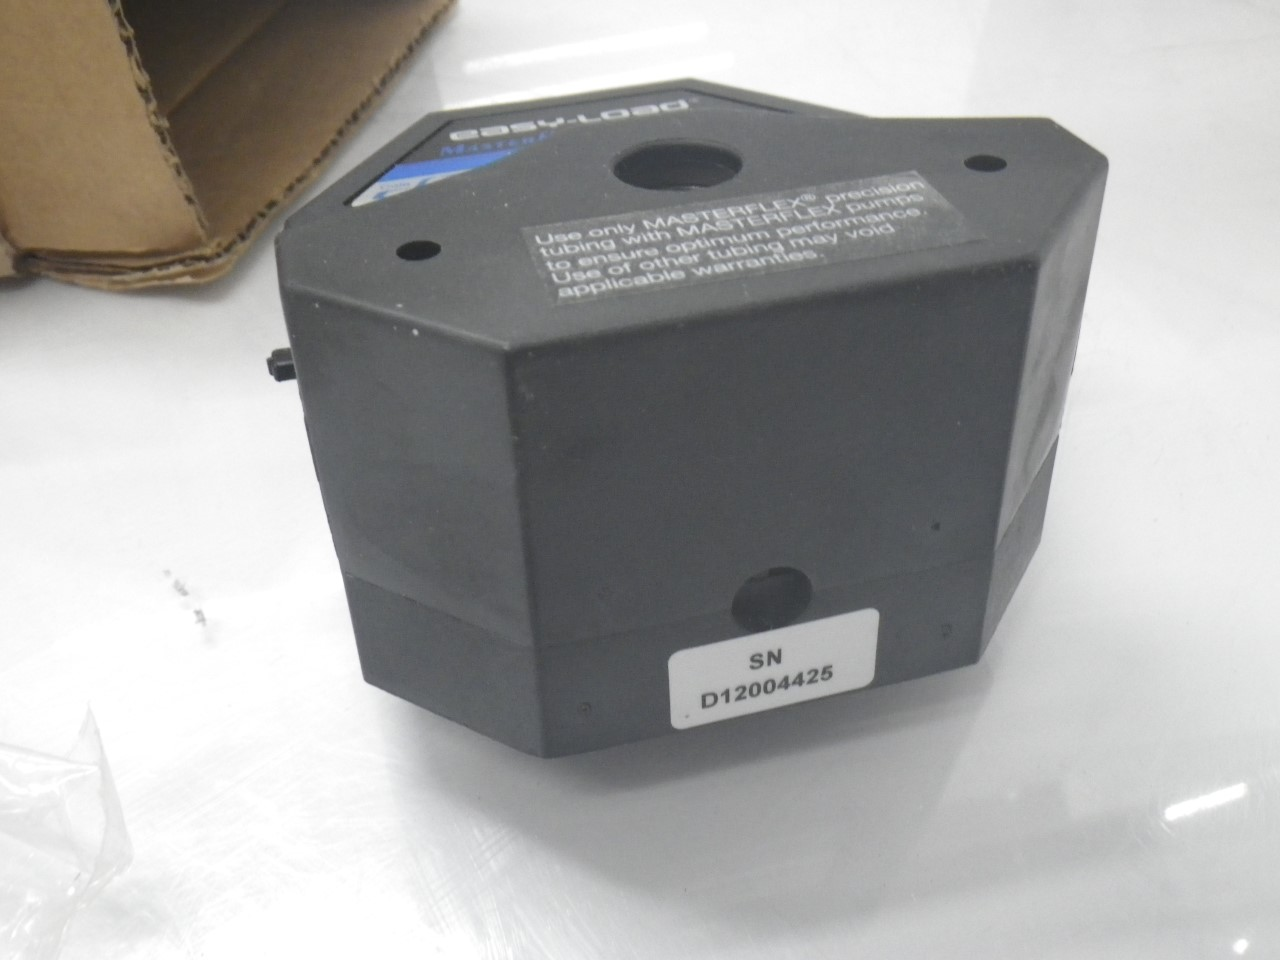 IMGP11207518-62 Cole Parmer Easy-load Masterflex Ls 7518-62 Pump Head (New with Box) (6)